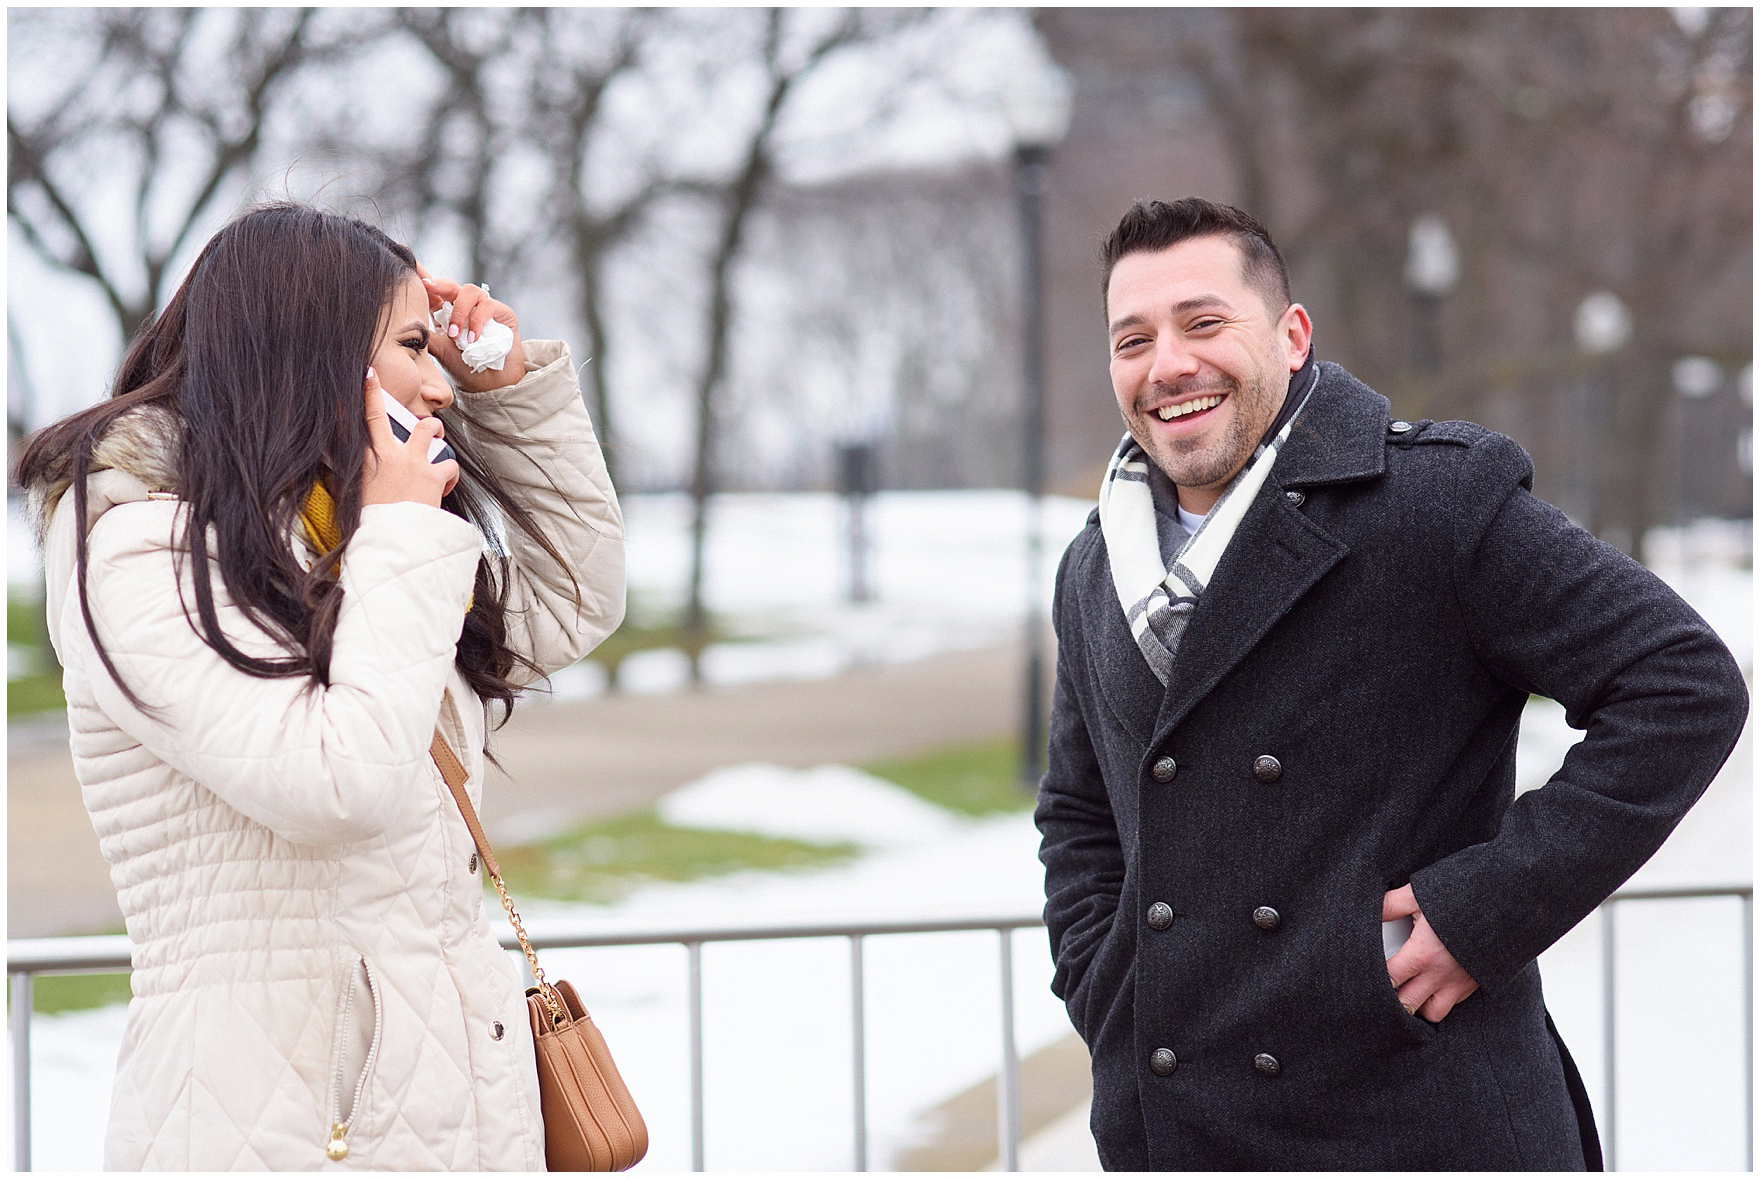 The bride and groom-to-be laugh and call family after a Chicago skyline proposal.